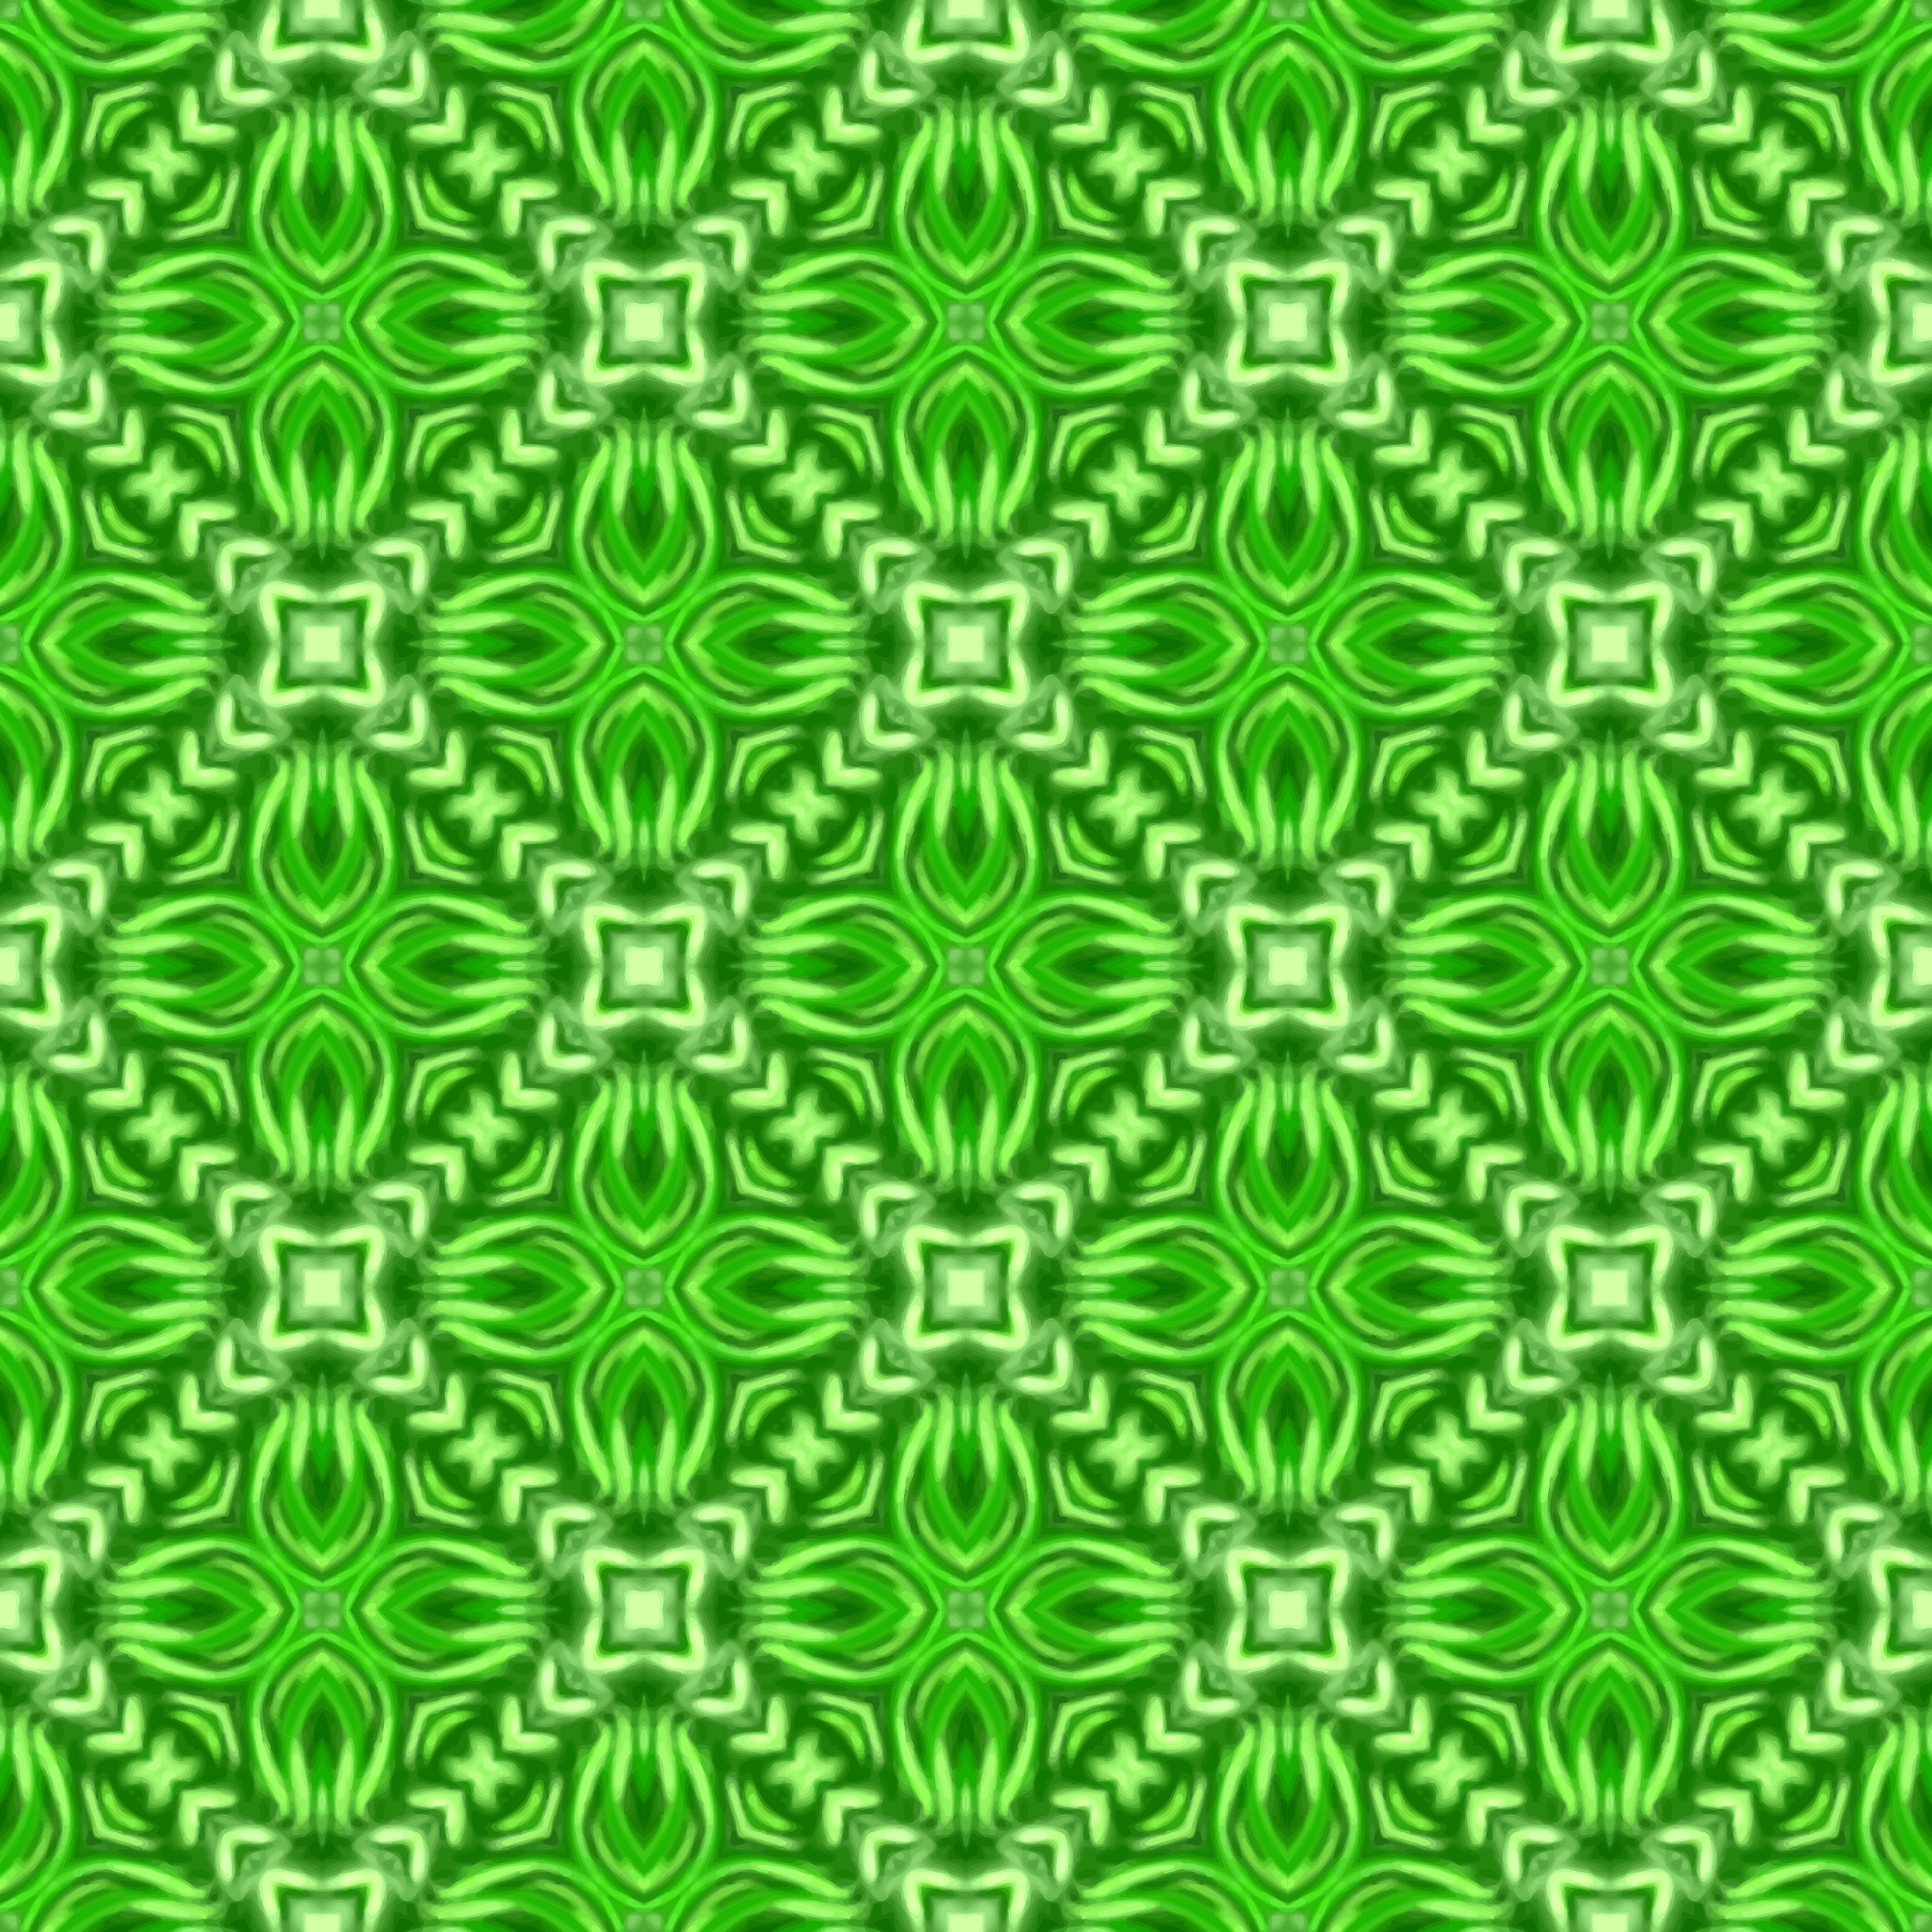 Background pattern 162 (colour 4) by Firkin